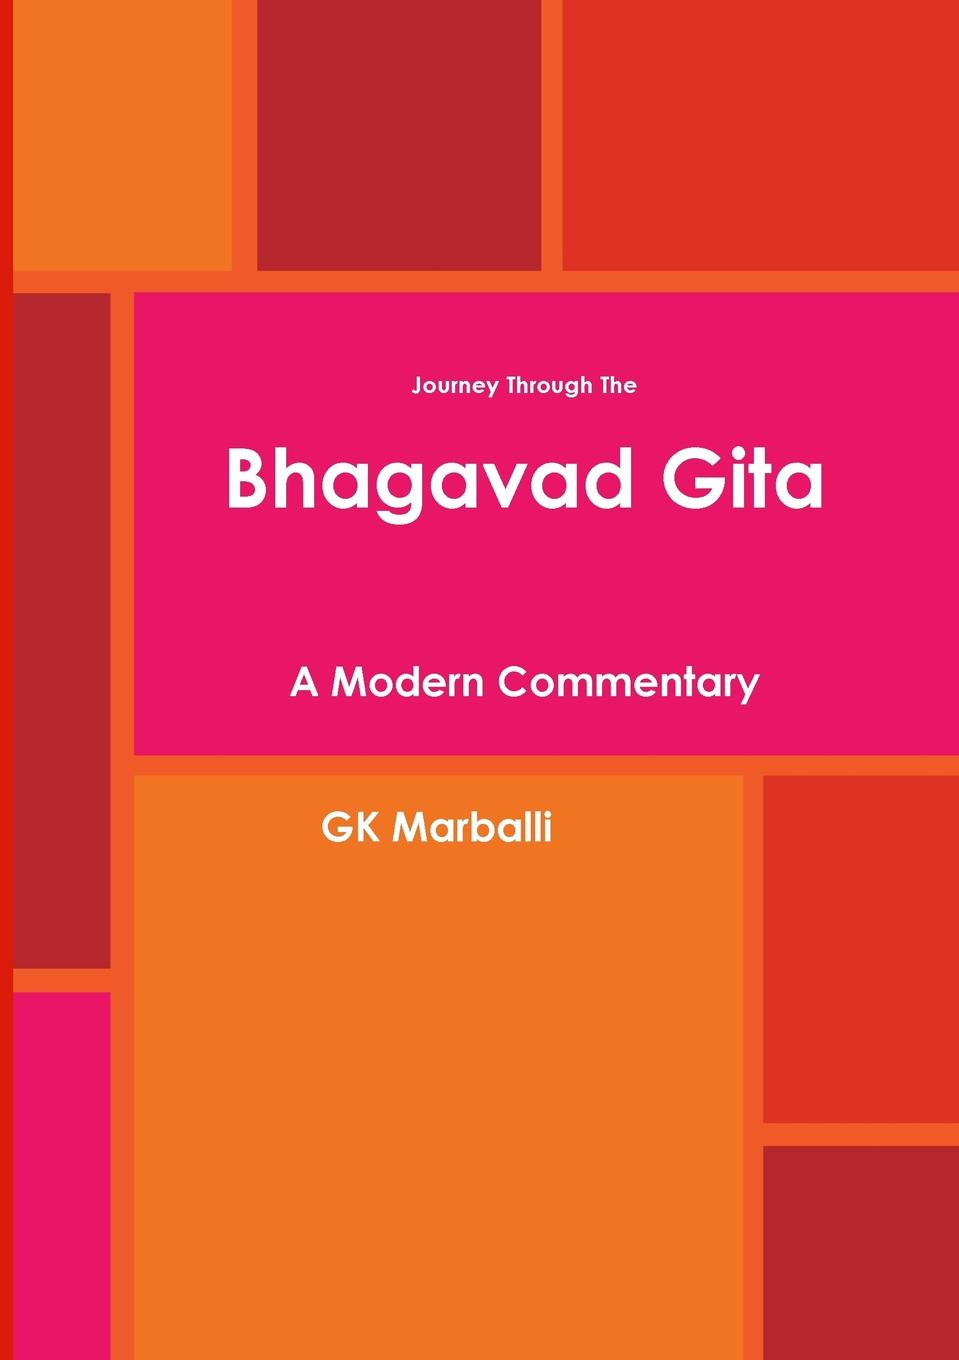 Фото - GK Marballi Journey Through The Bhagavad Gita - A Modern Commentary debashis chatterjee timeless leadership 18 leadership sutras from the bhagavad gita